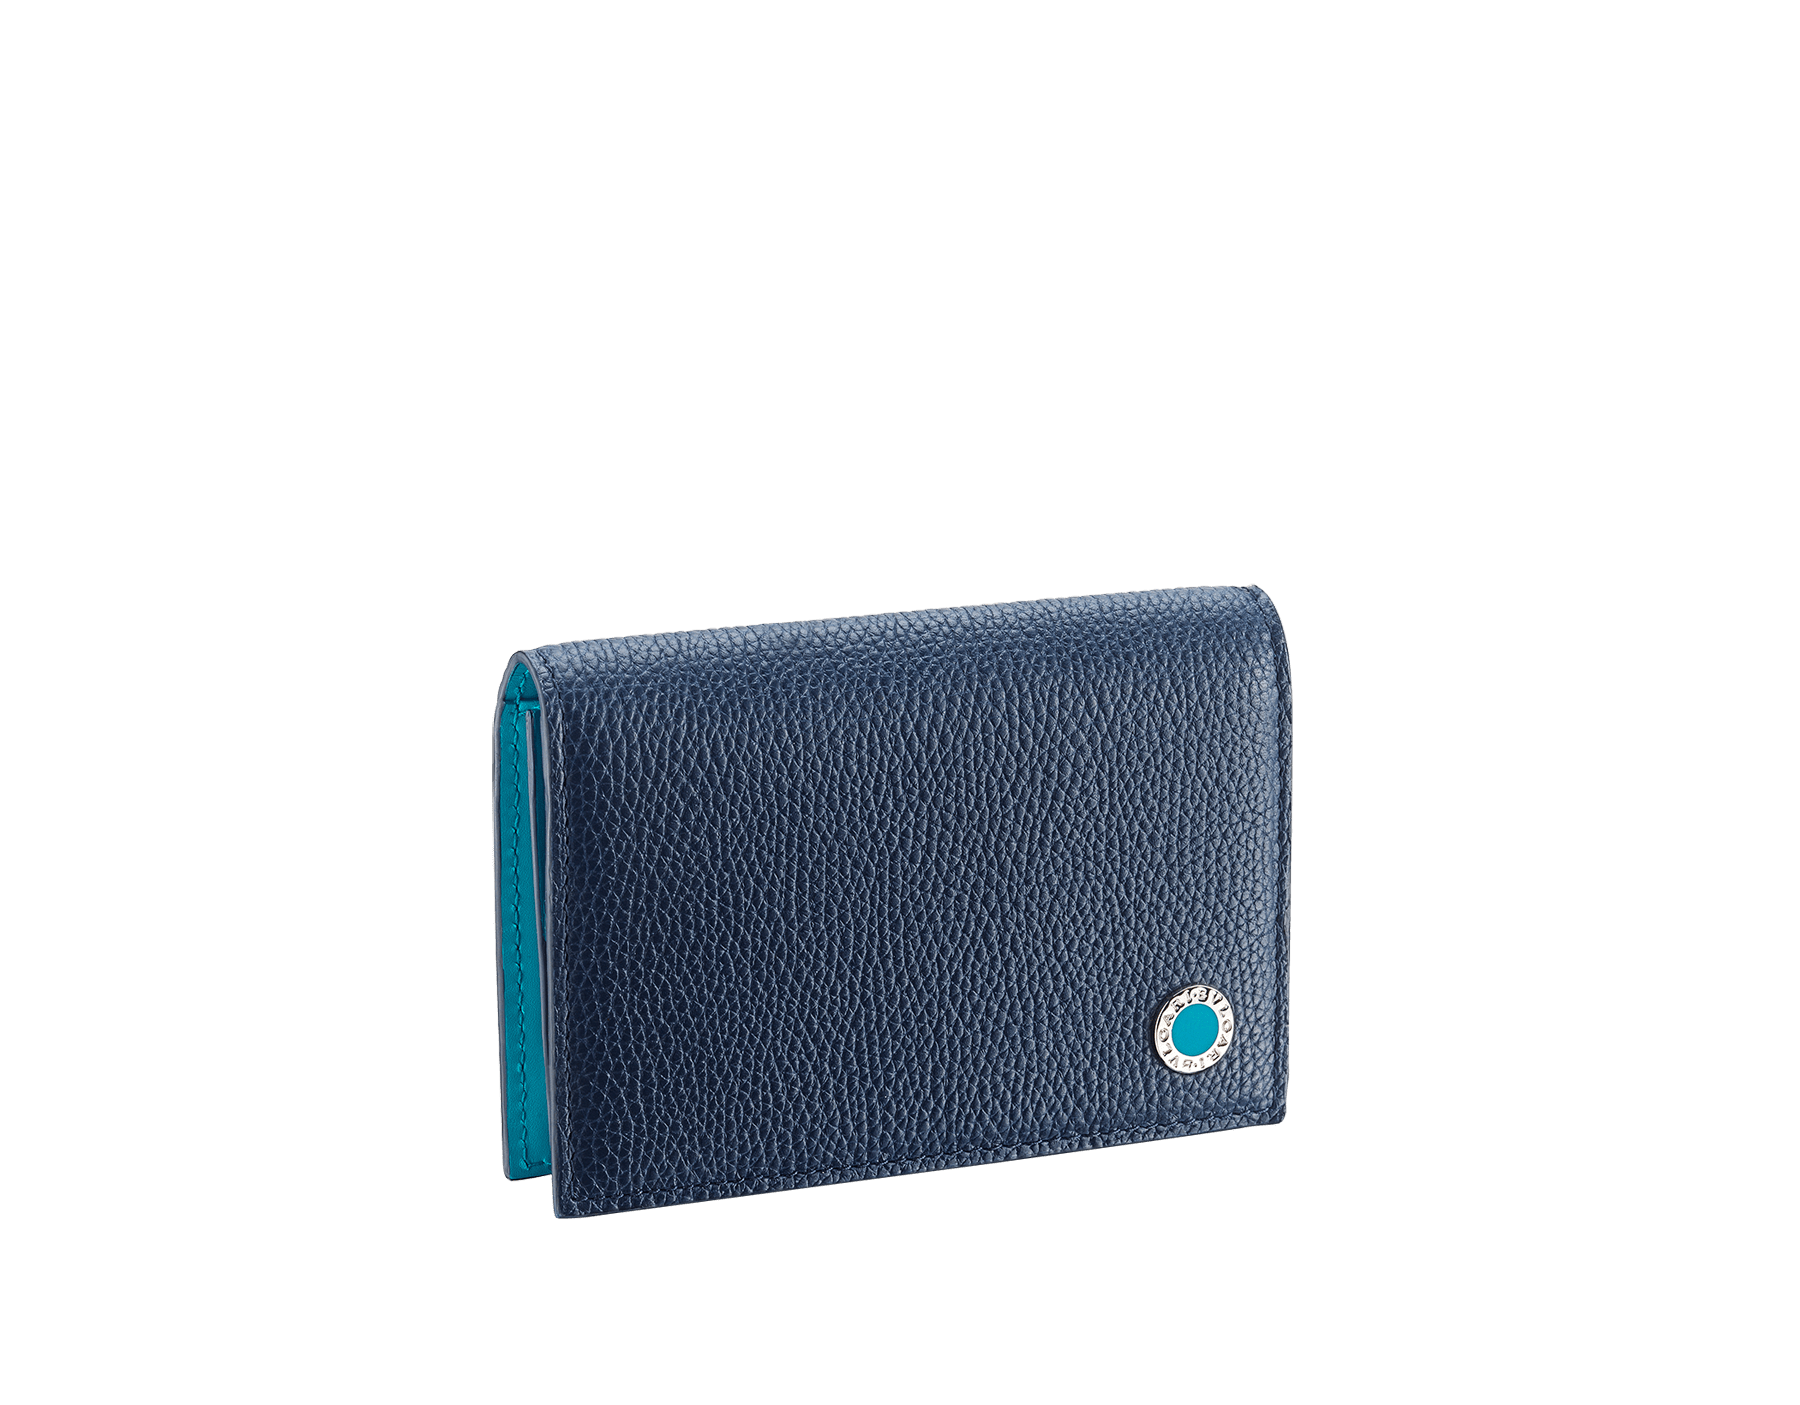 """""""BVLGARI BVLGARI"""" business card holder in denim sapphire soft full grain calf leather and capri turquoise calf leather, with brass palladium plated logo décor coloured in capri turquoise enamel. BBM-BC-HOLD-SIMPLE-sfgcl image 1"""